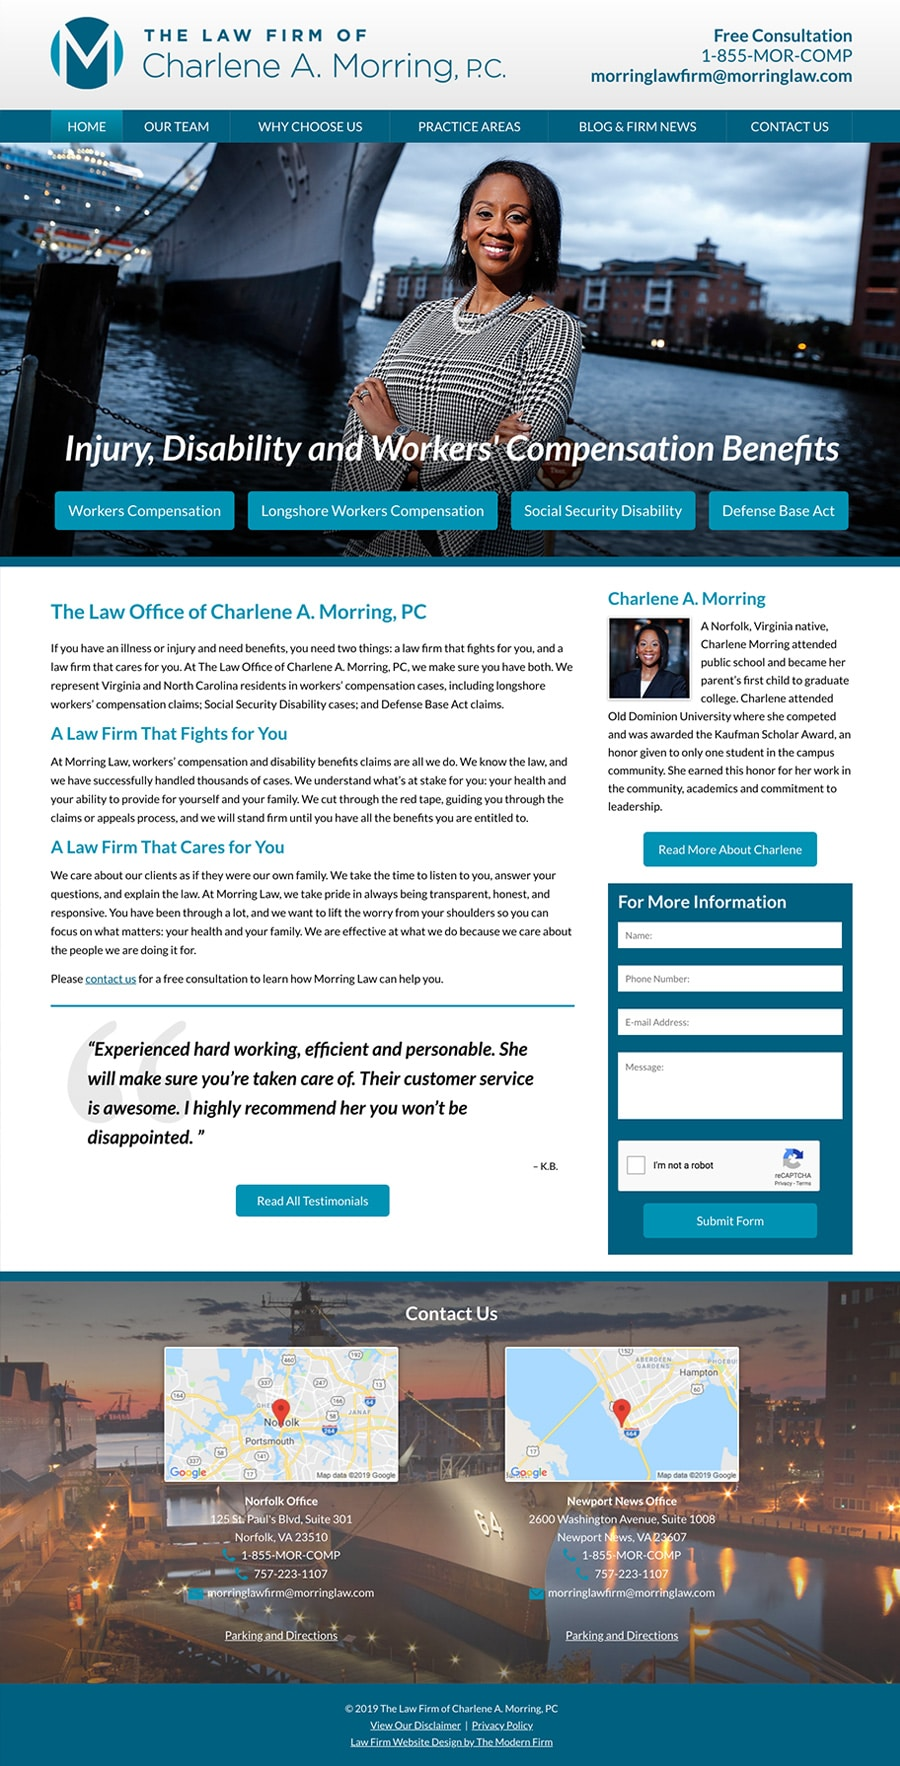 Law Firm Website Design for The Law Firm of Charlene A. Morring, PC